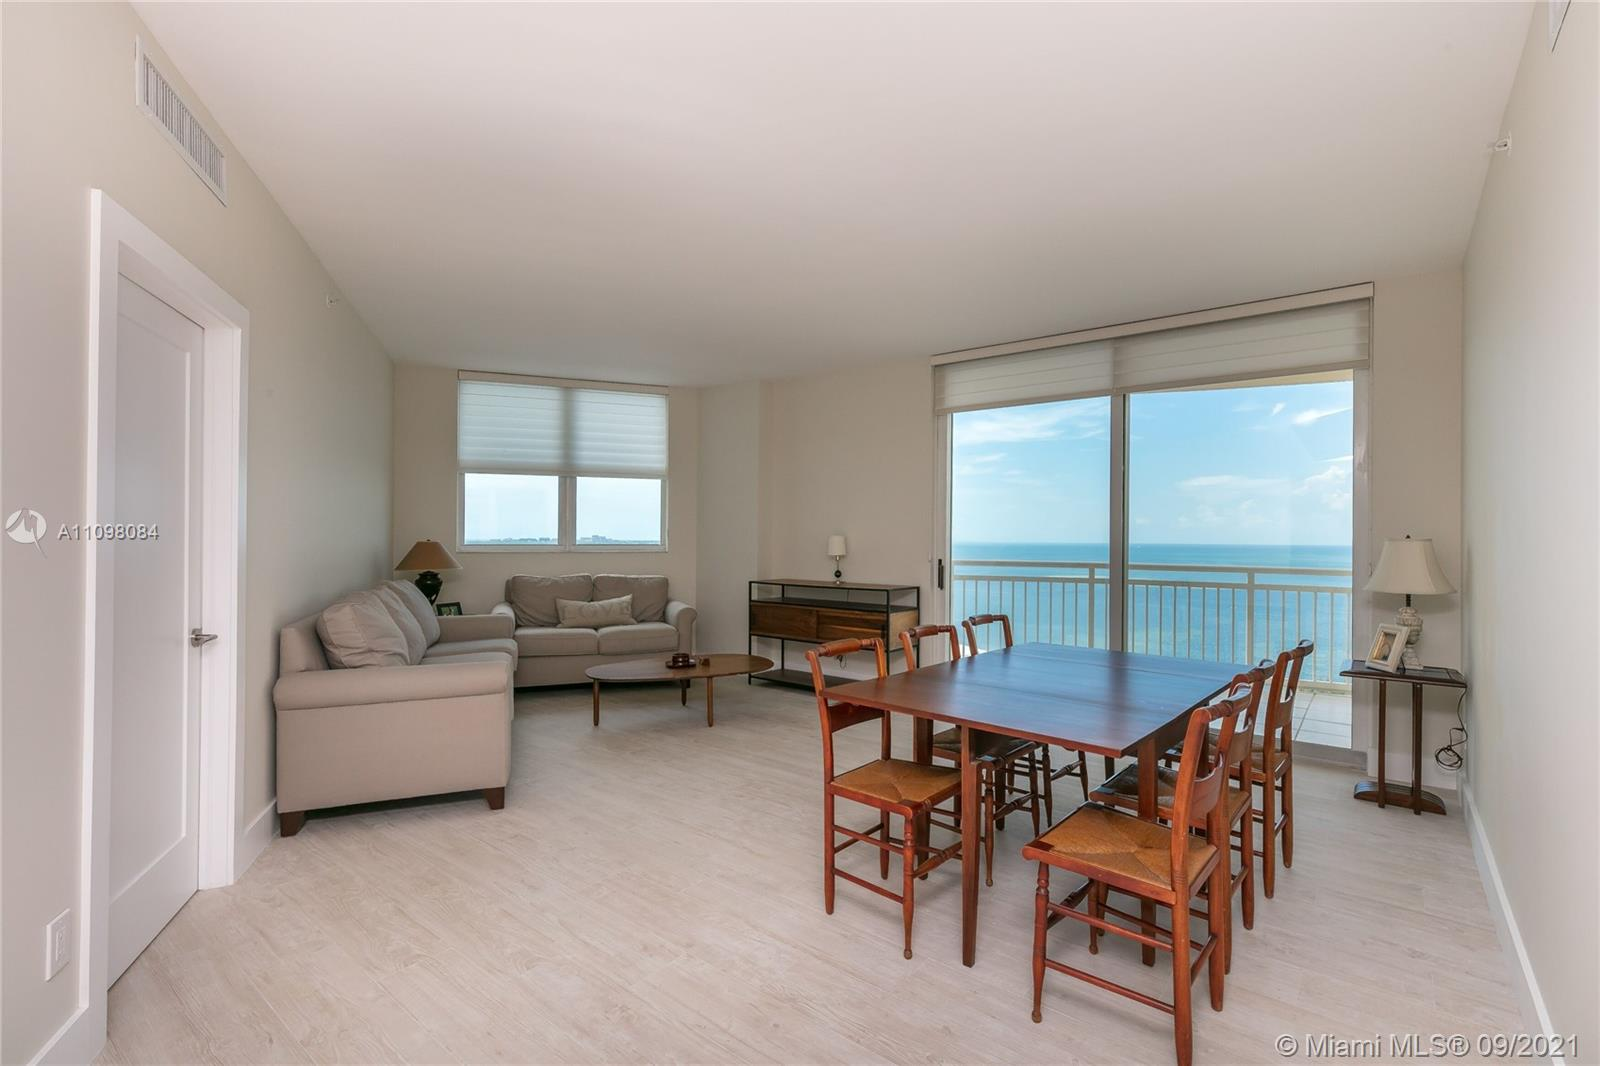 Unobstructed Bay Views